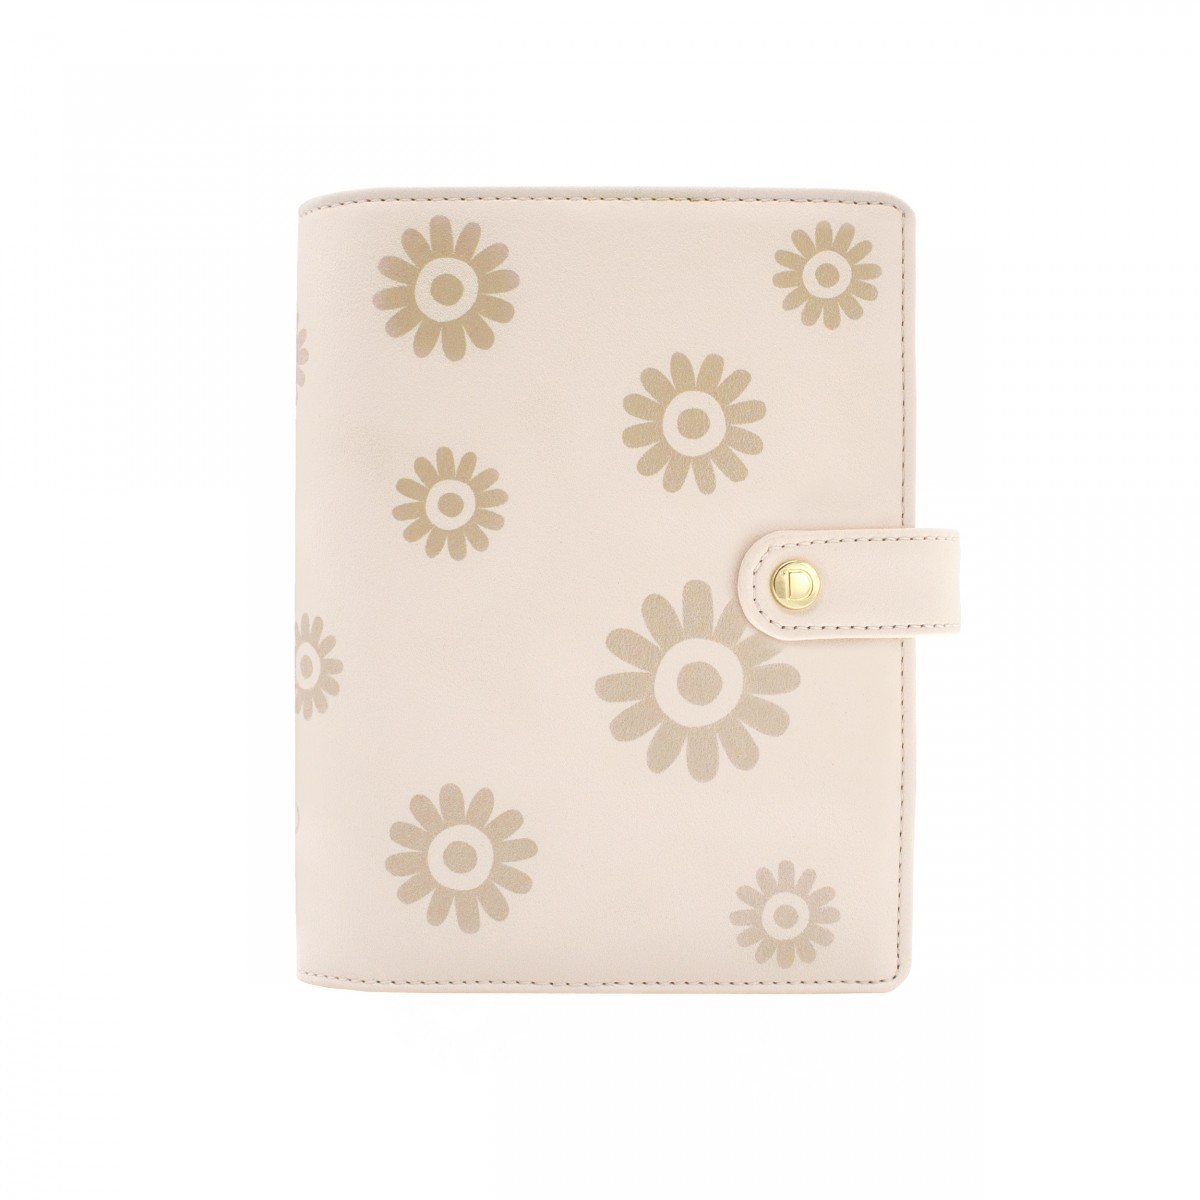 DISCAGENDA BLOSSOMS GOLD COVER PERSONAL SNAP CLOSURE